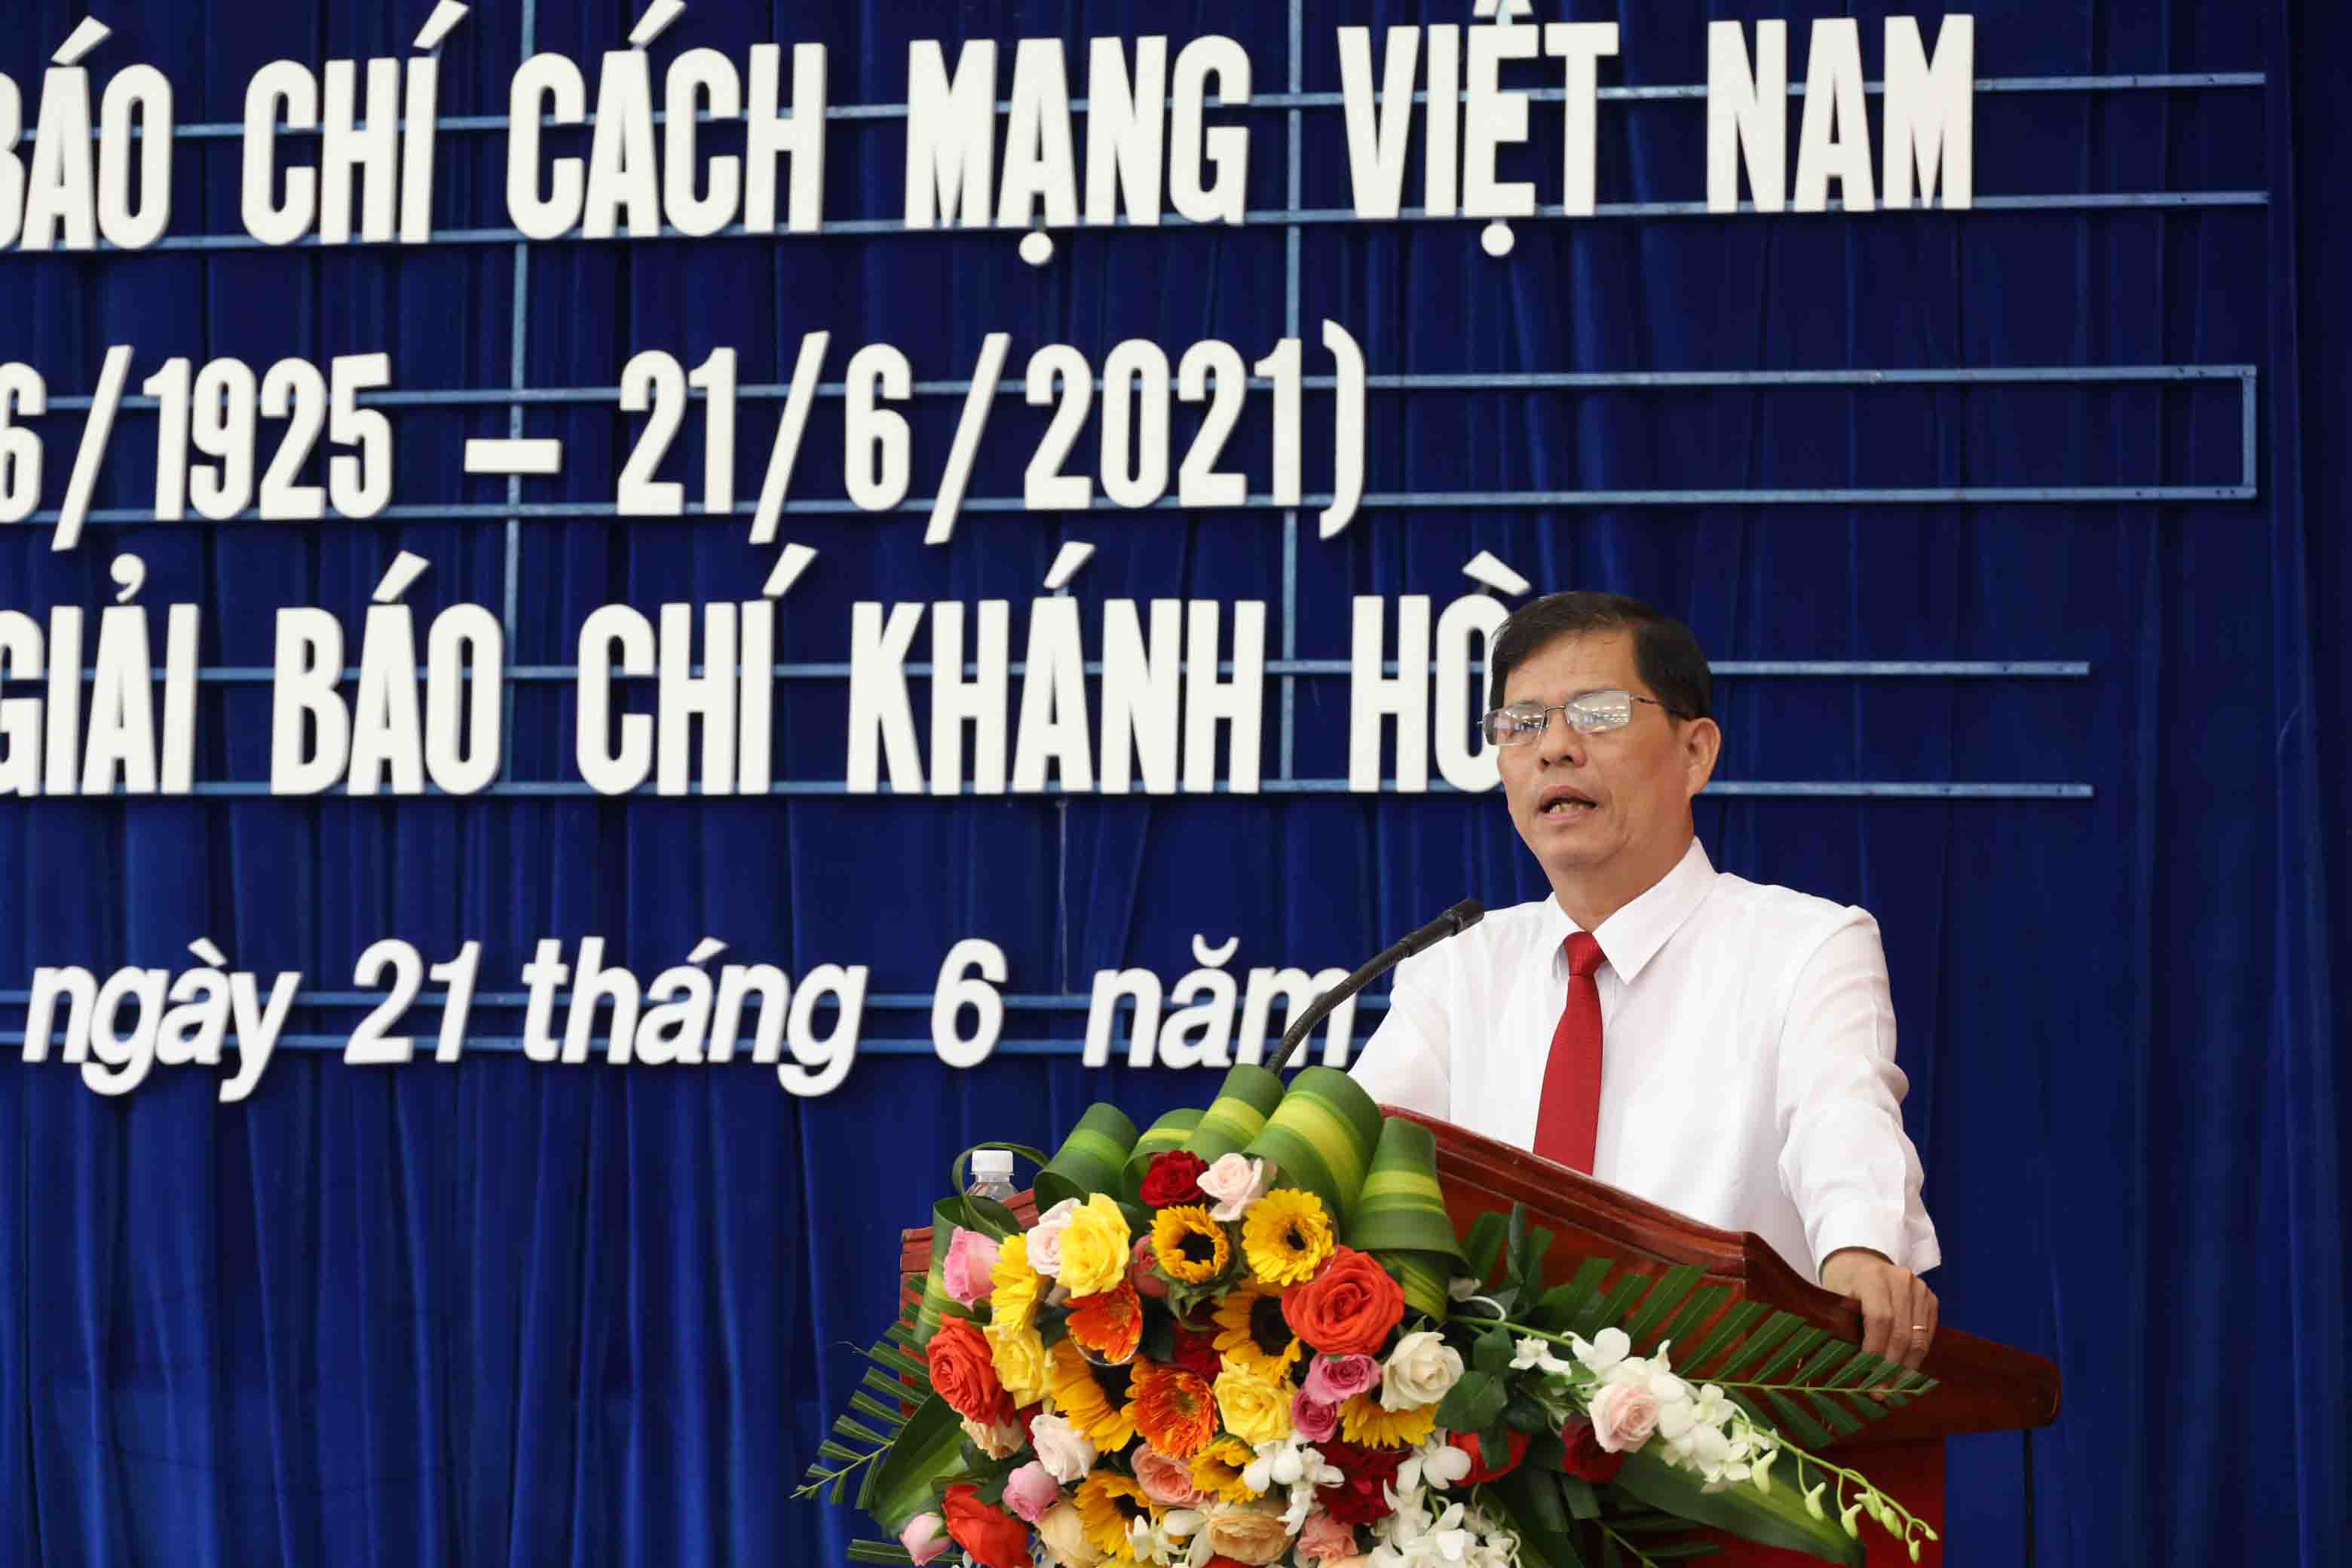 Nguyen Tan Tuan delivering speech at the ceremony